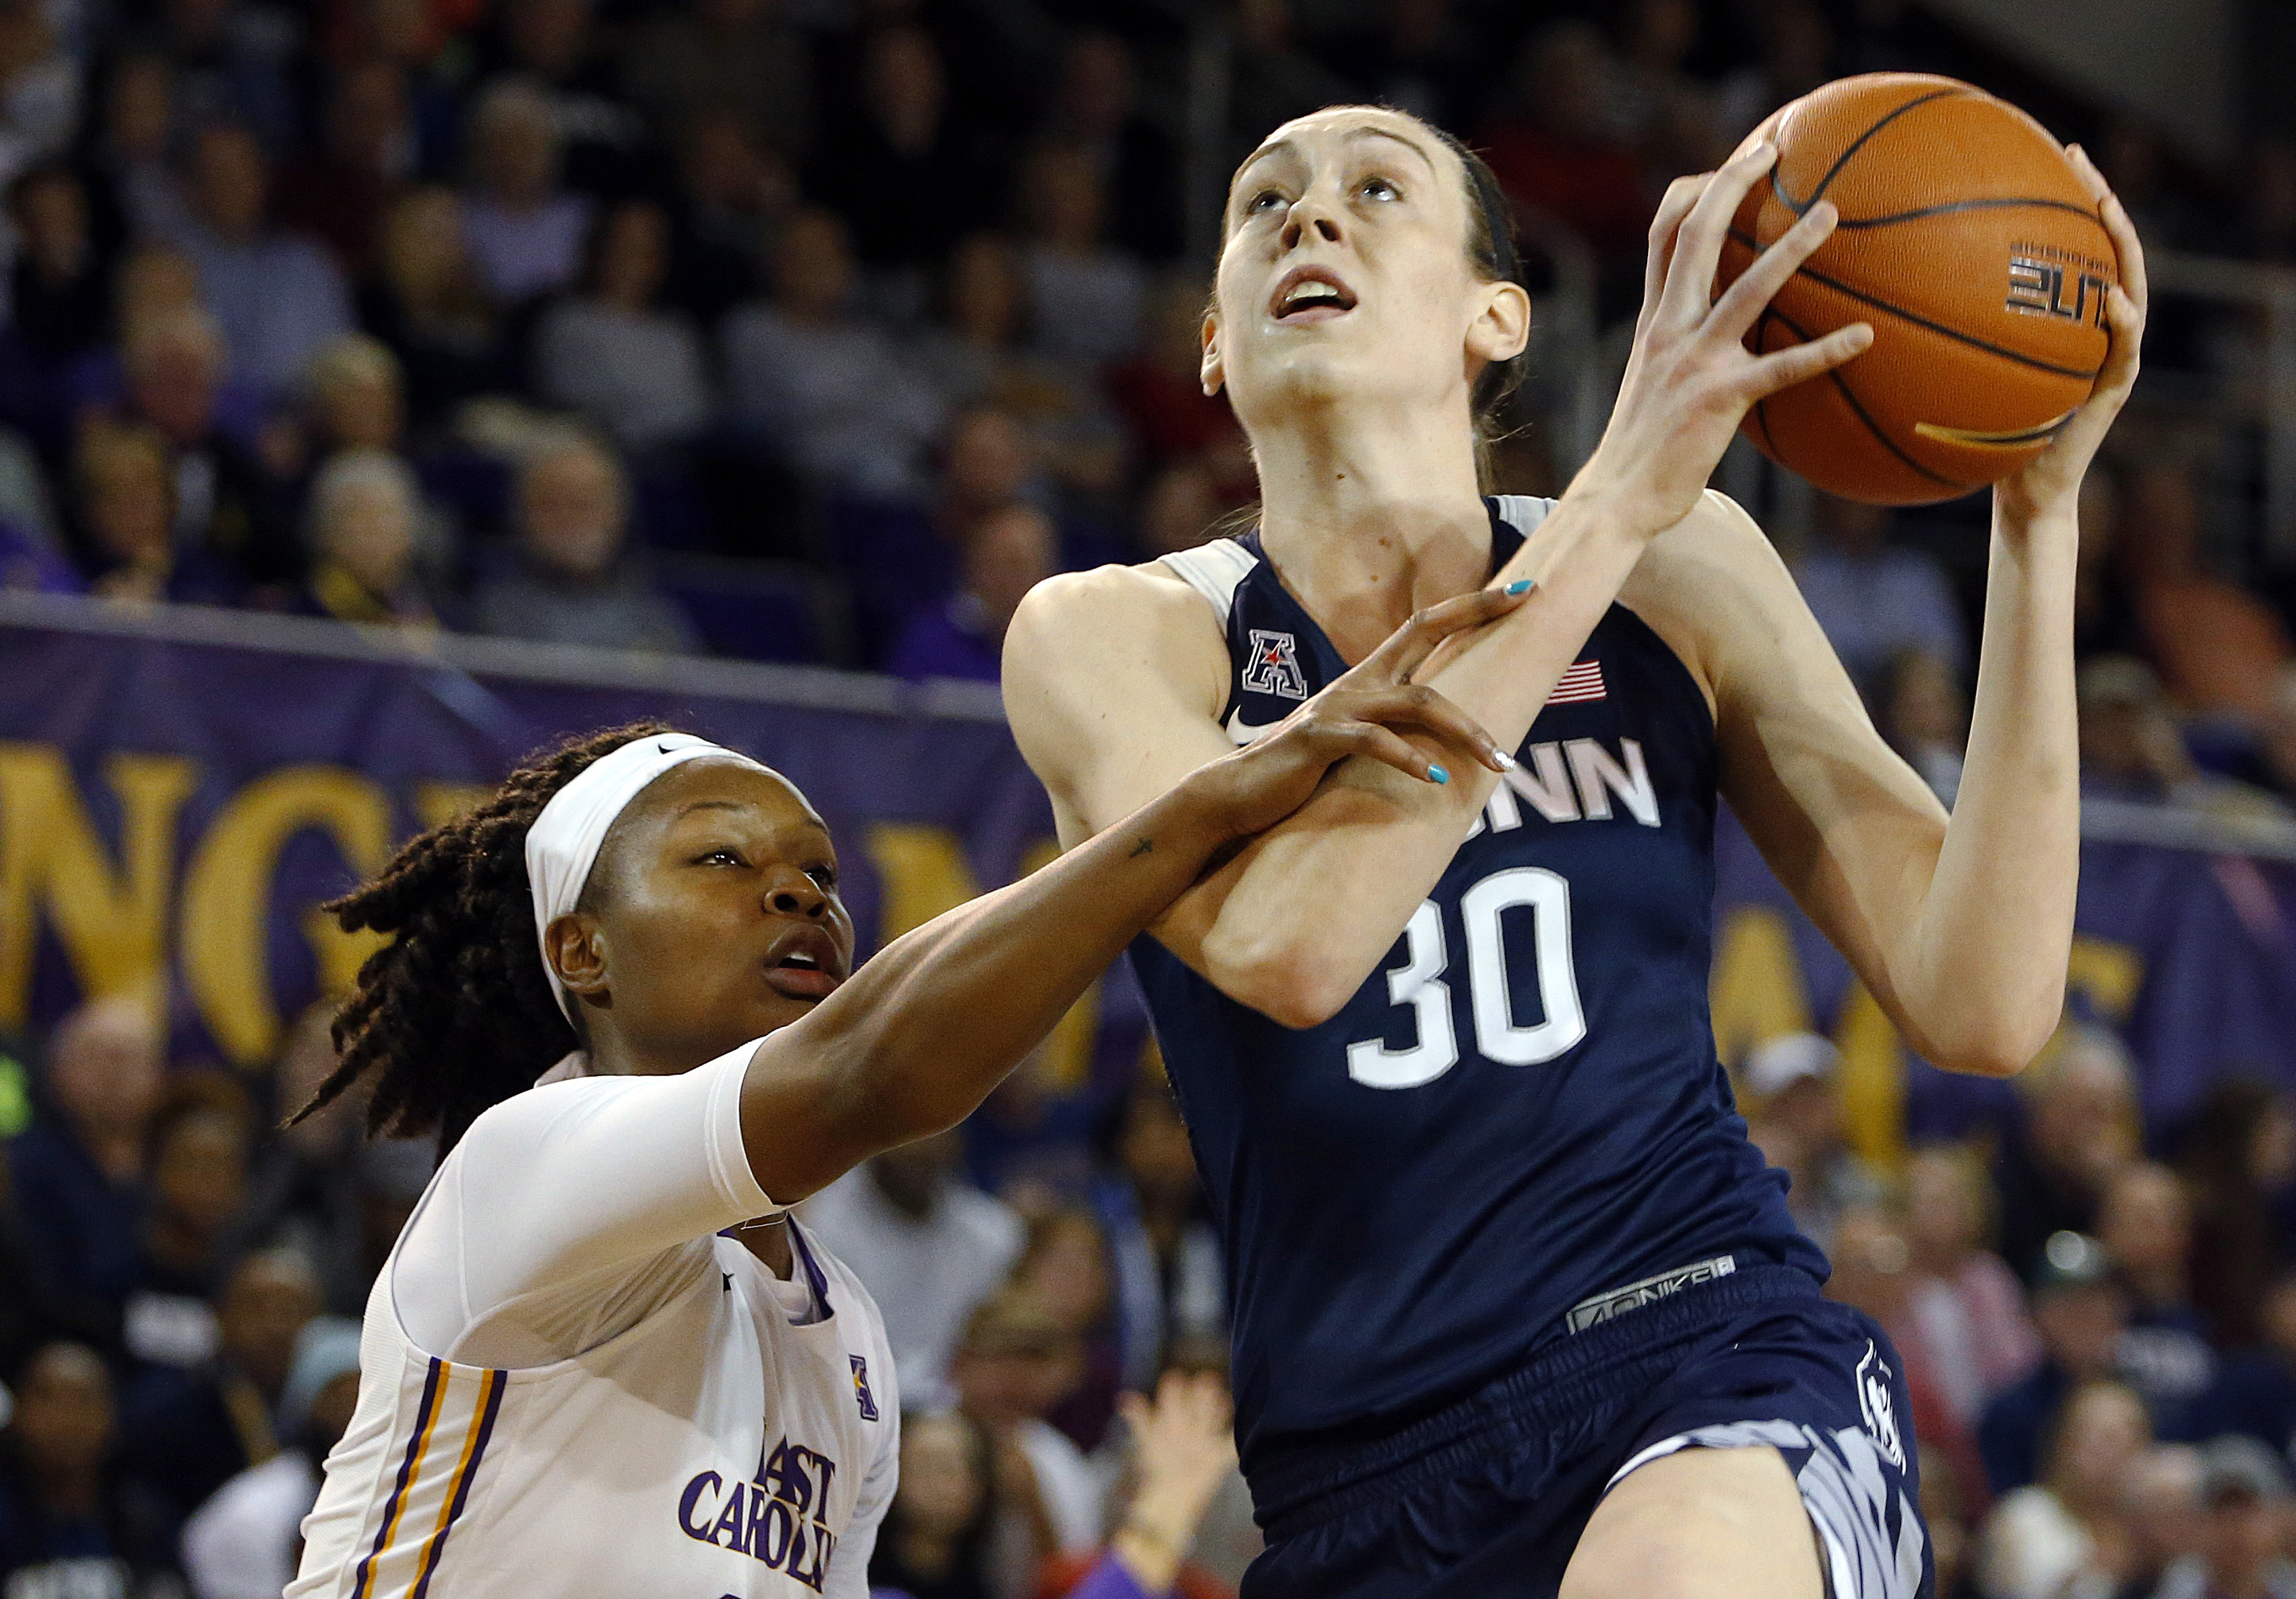 FILE - In this Saturday, Feb. 20, 2016, file photo, Connecticut's Breanna Stewart (30) drives the ball past East Carolina I'Tiana Taylor (24) during the first half of an NCAA college basketball game in Greenville, N.C. Stewart got a brief glimpse of her b